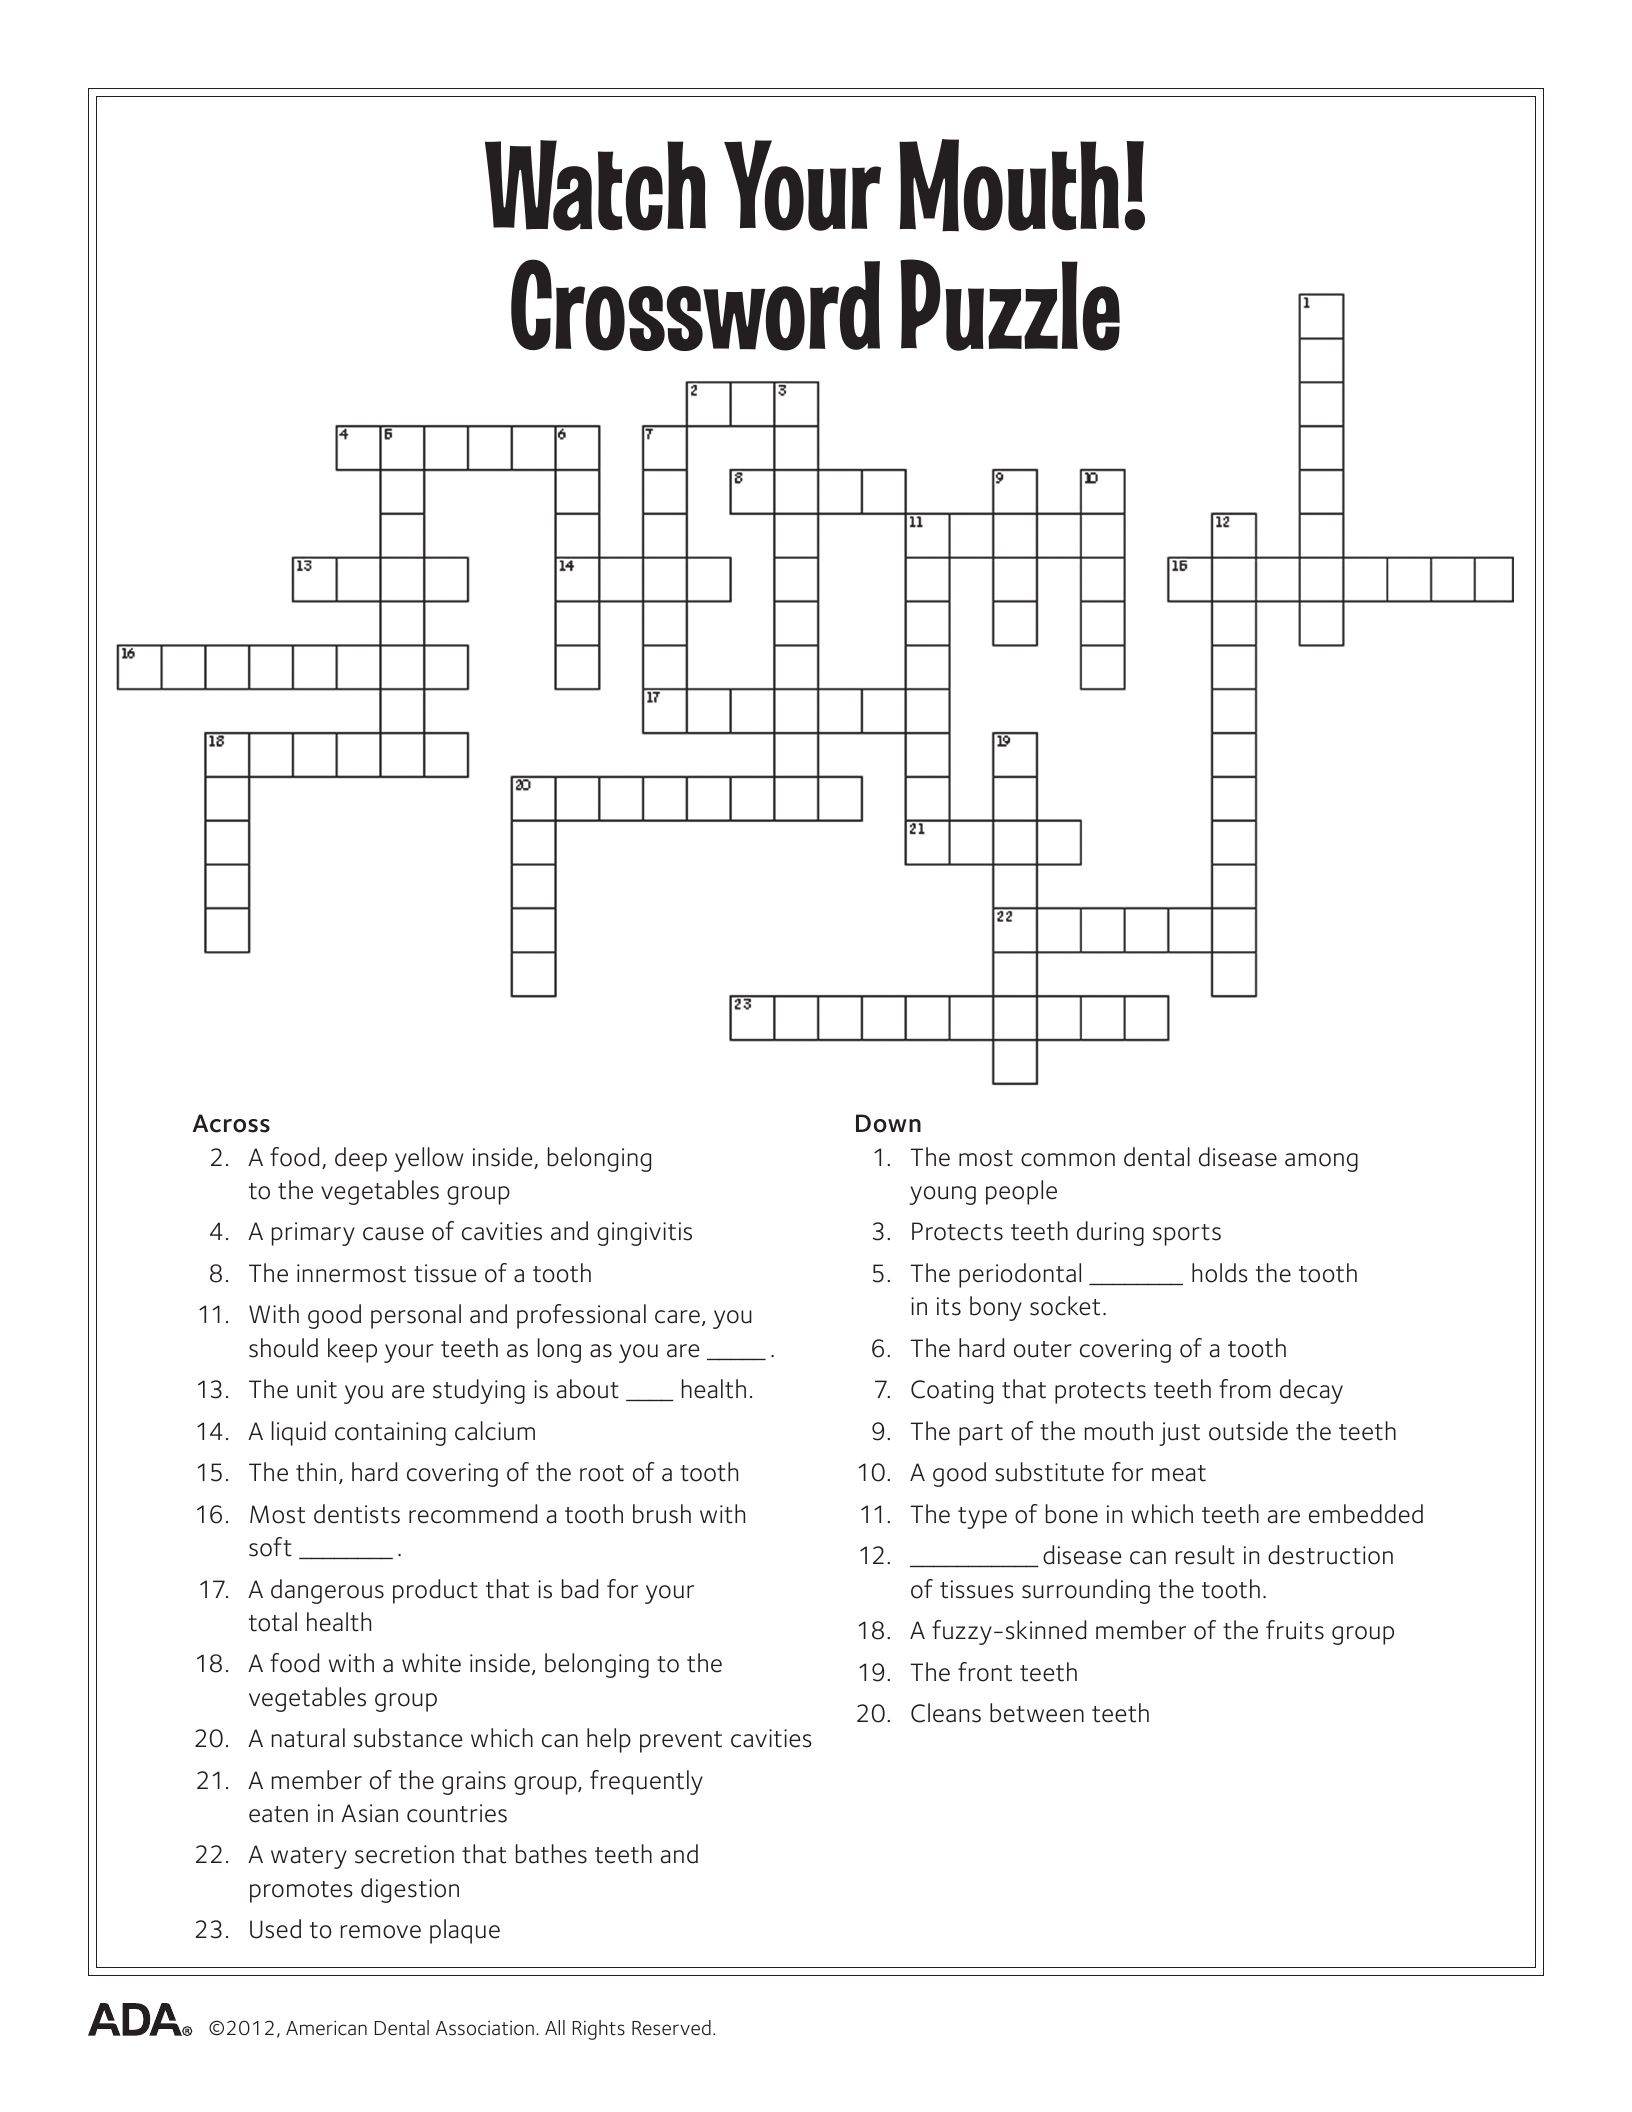 Welcome to The Crossword Solver